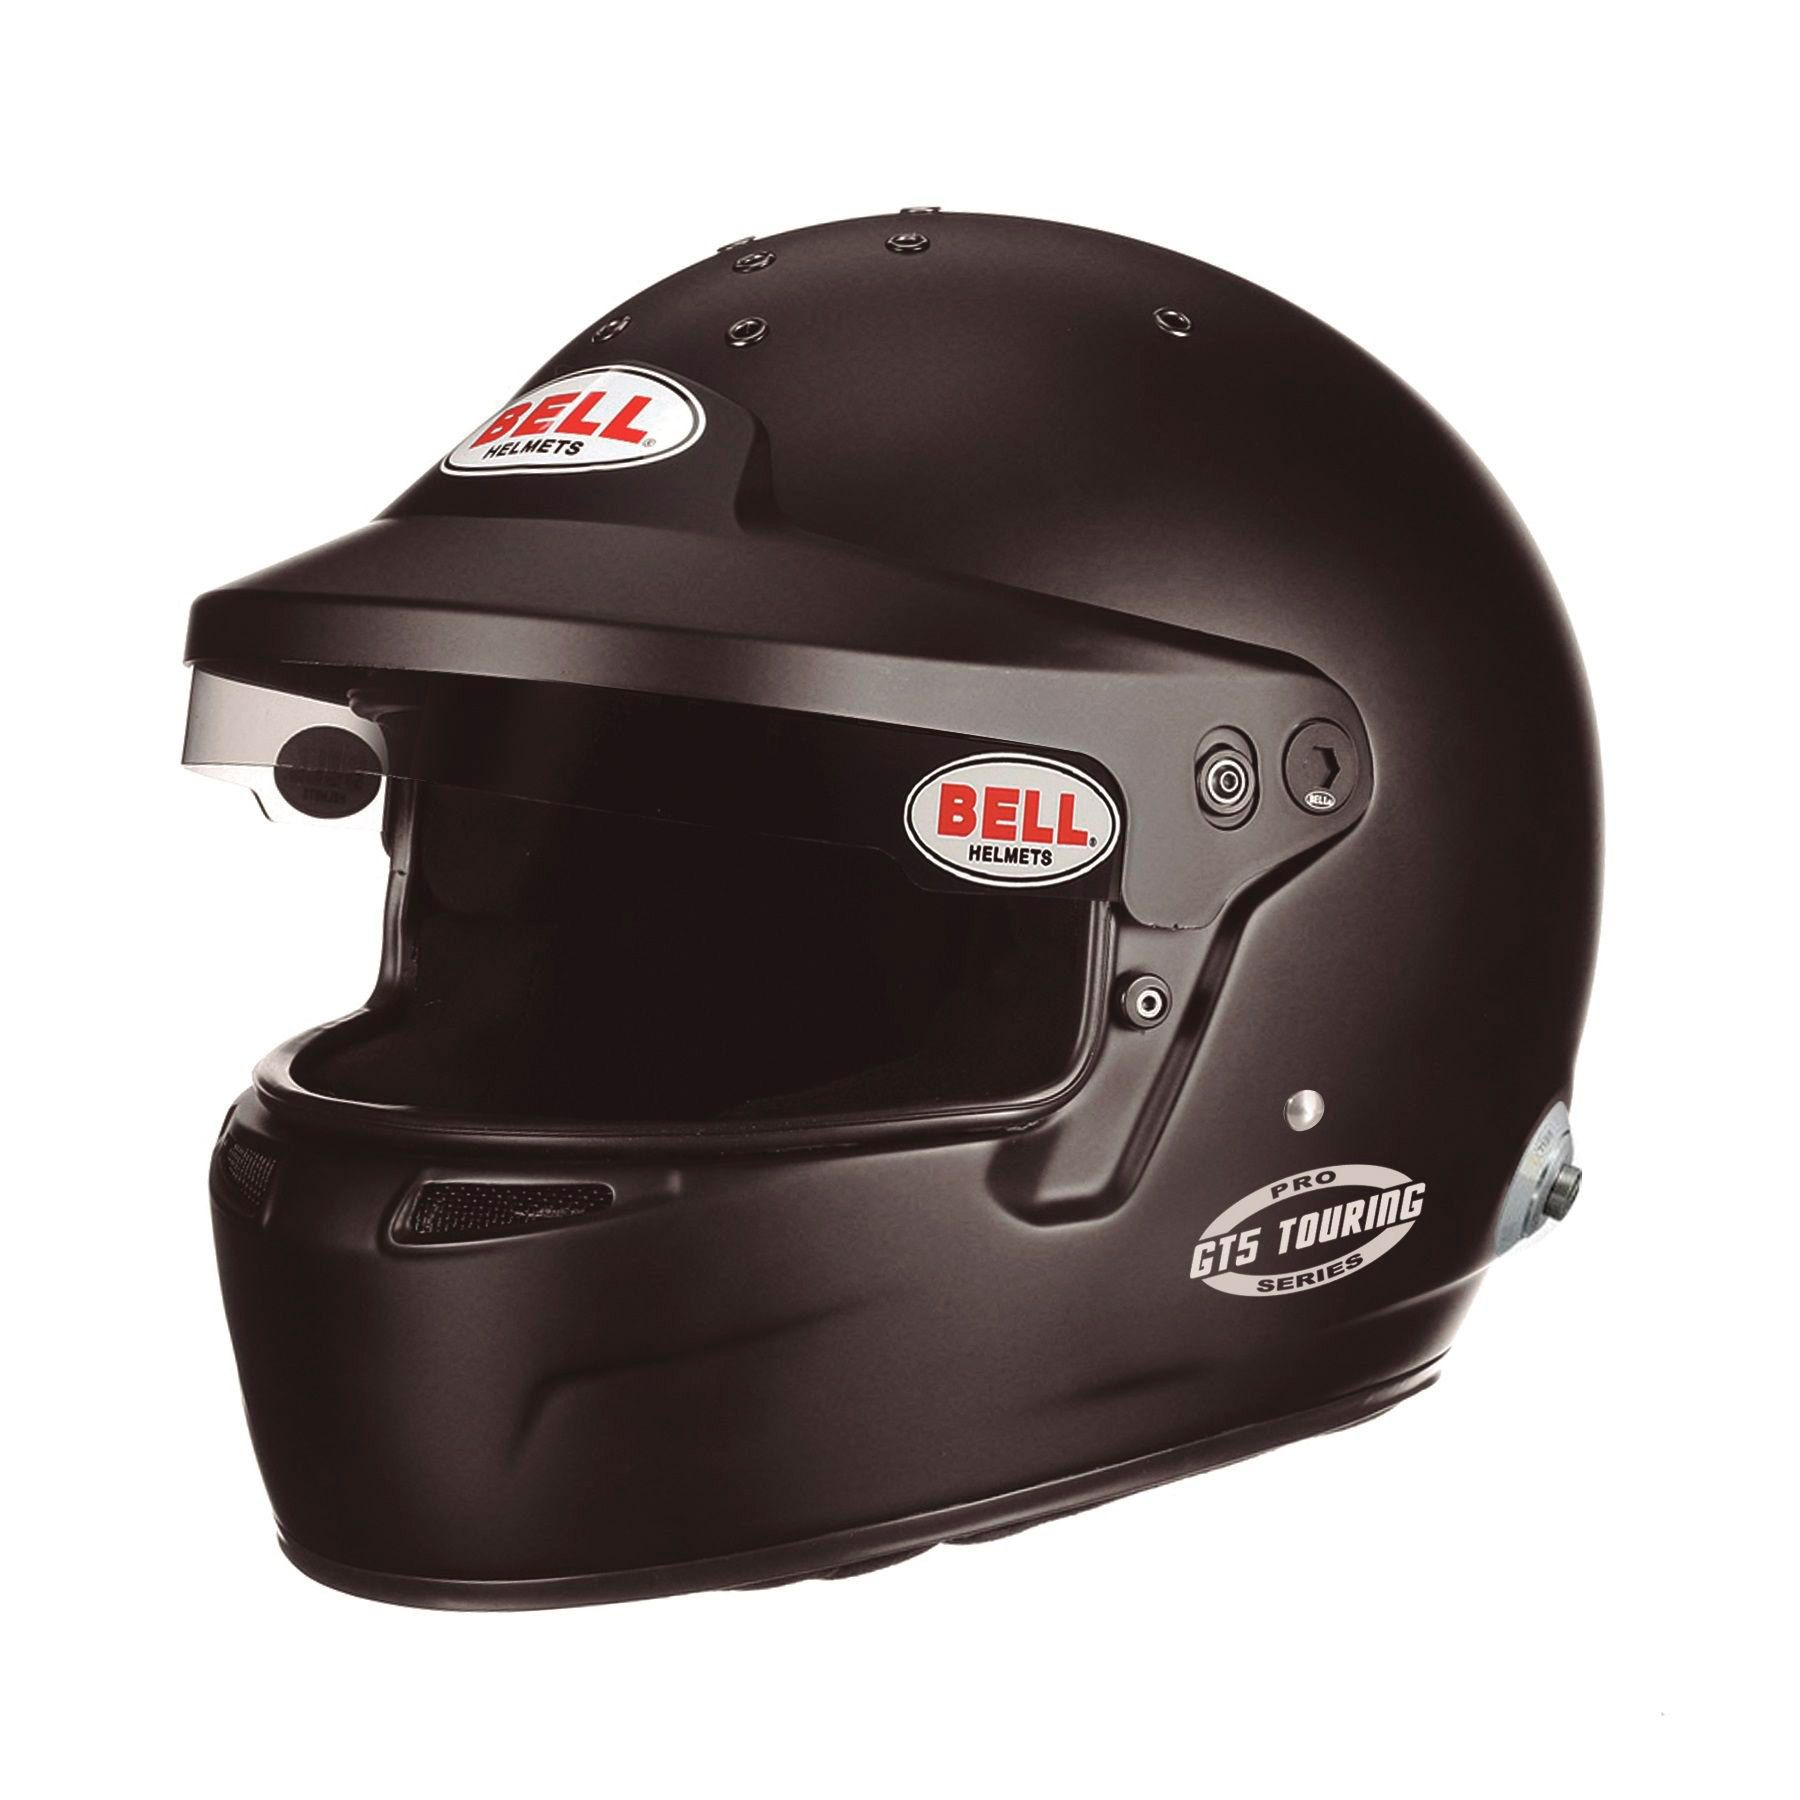 BELL GT 5 Pro Touring black